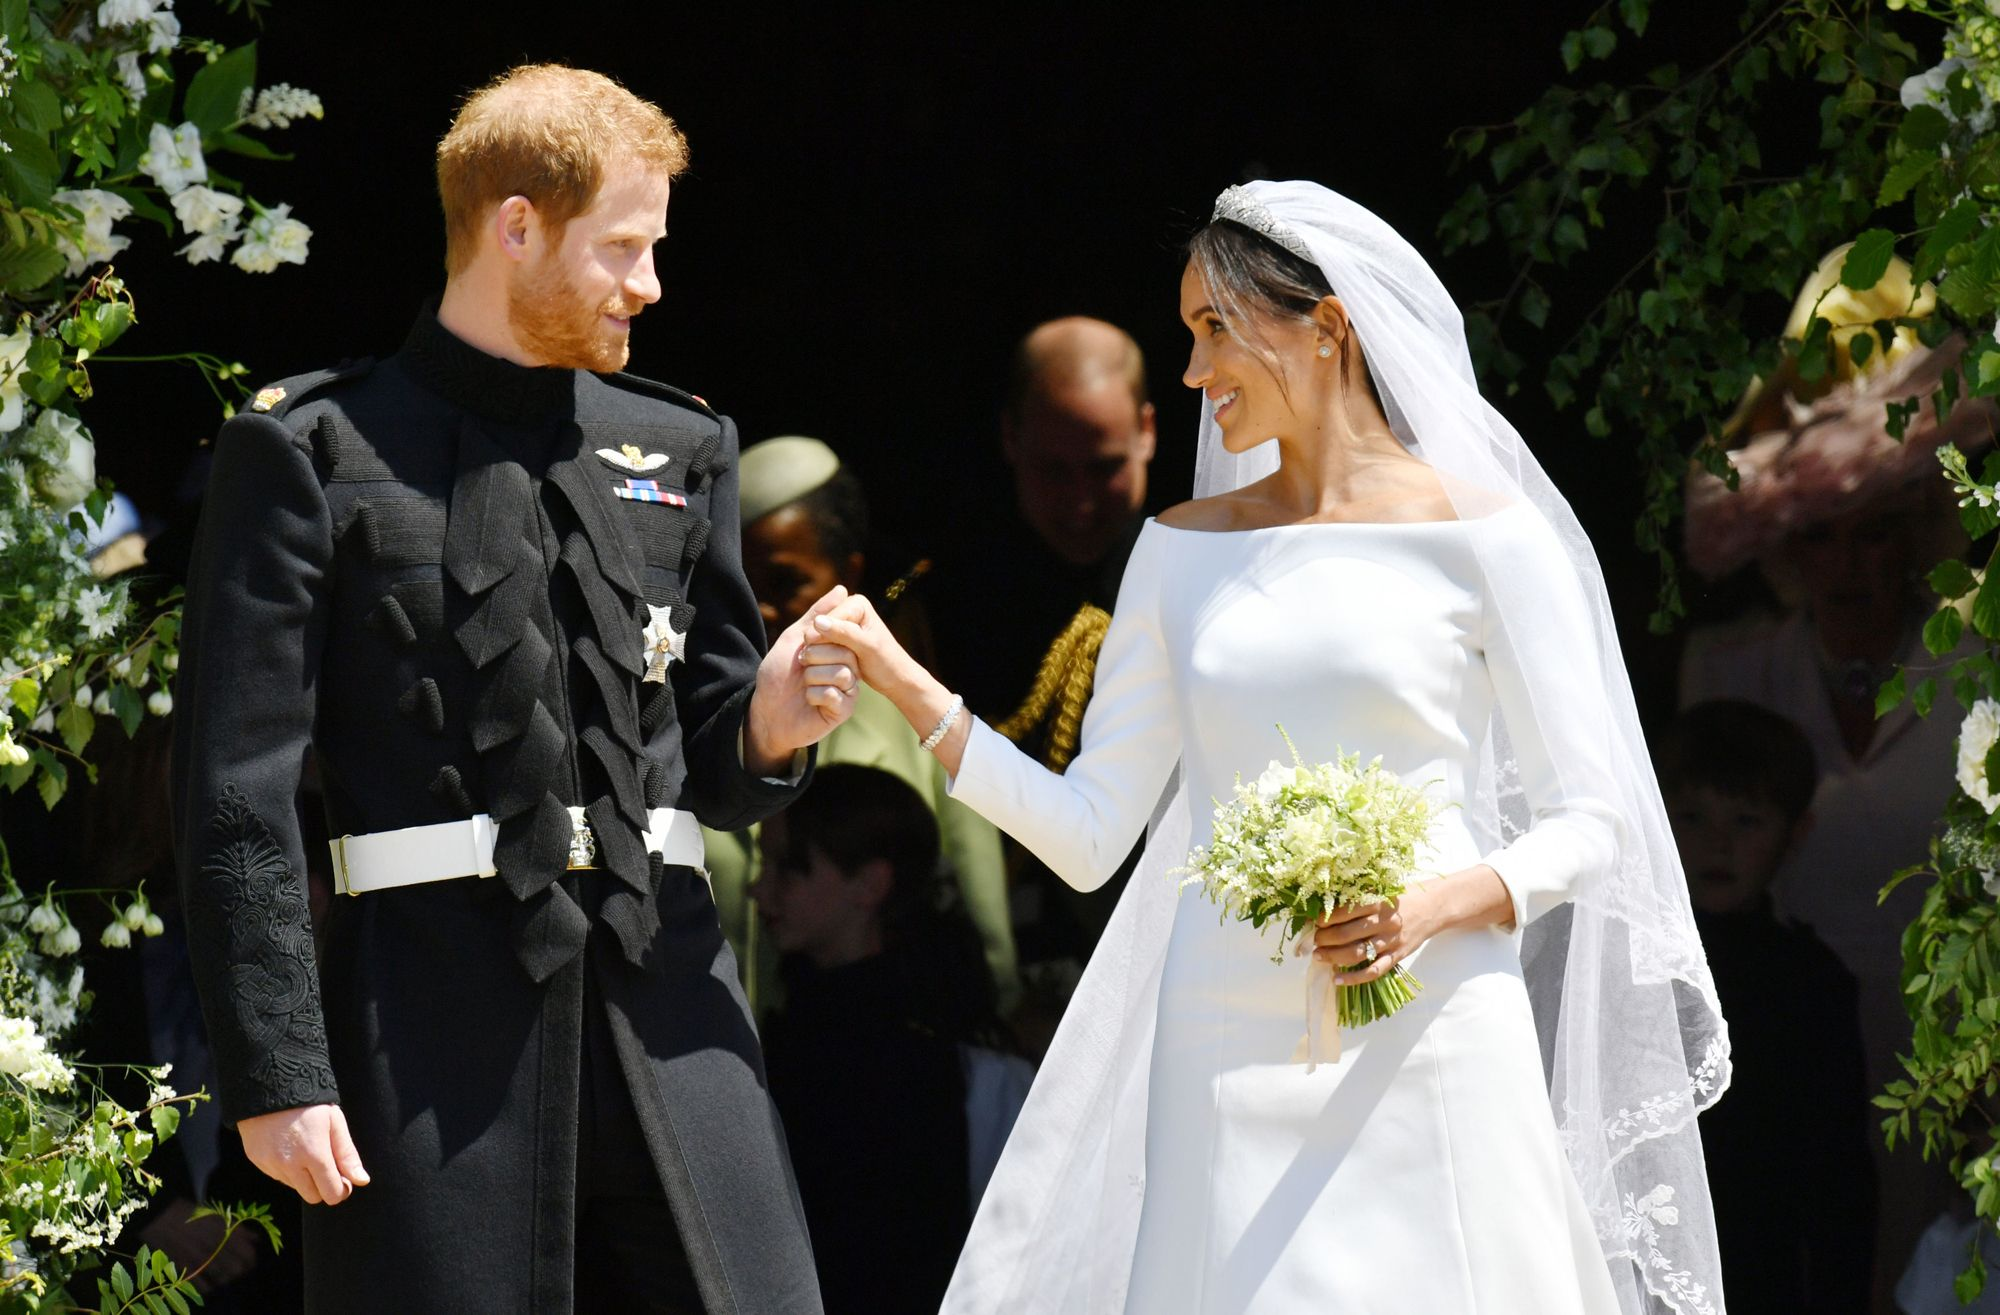 Here S The Menu From The Royal Wedding Lunch Reception And It Looks Delicious Royal Wedding Harry Harry And Meghan Wedding Meghan Markle Wedding